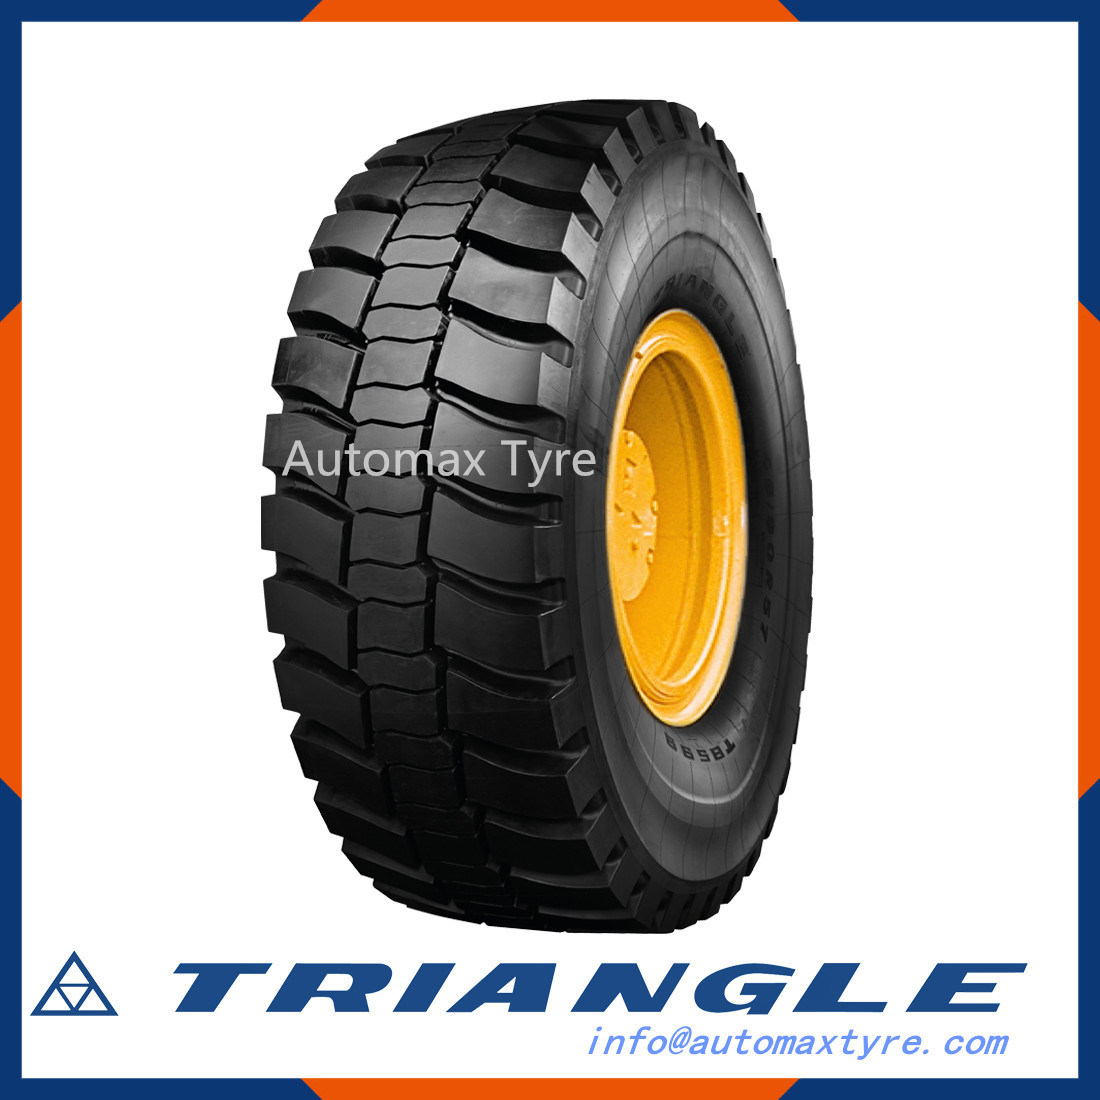 Steel Radial Tubeless Tyre R13-R22, R17.5-R24.5, R25-R57 with EU Certification